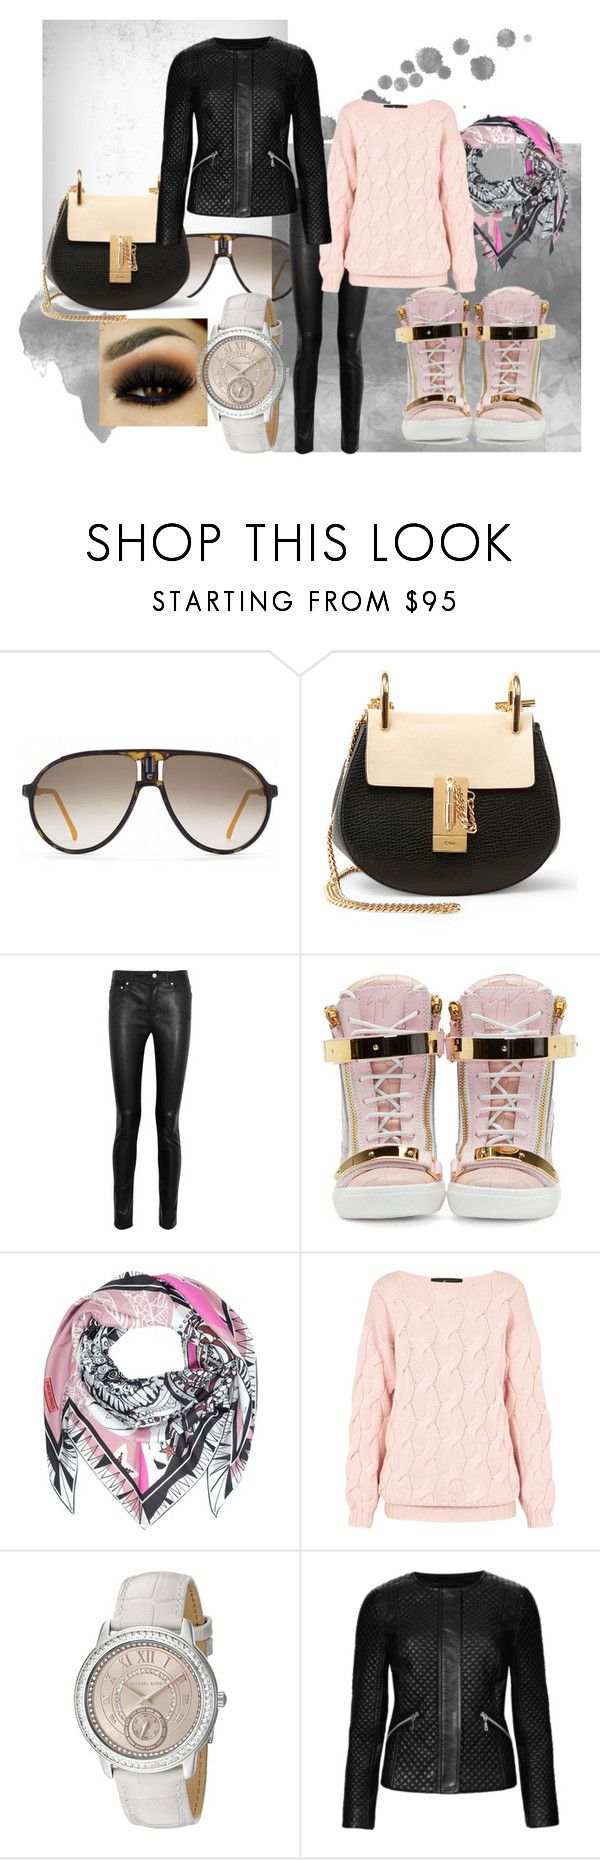 Spring Collection by Bella by raluca-belu on Polyvore featuring AV by Adriana Voloshchuk, M&S Collection, Acne Studios, Giuseppe Zanotti, Chloé, Michael Kors, Emilio Pucci and Carrera